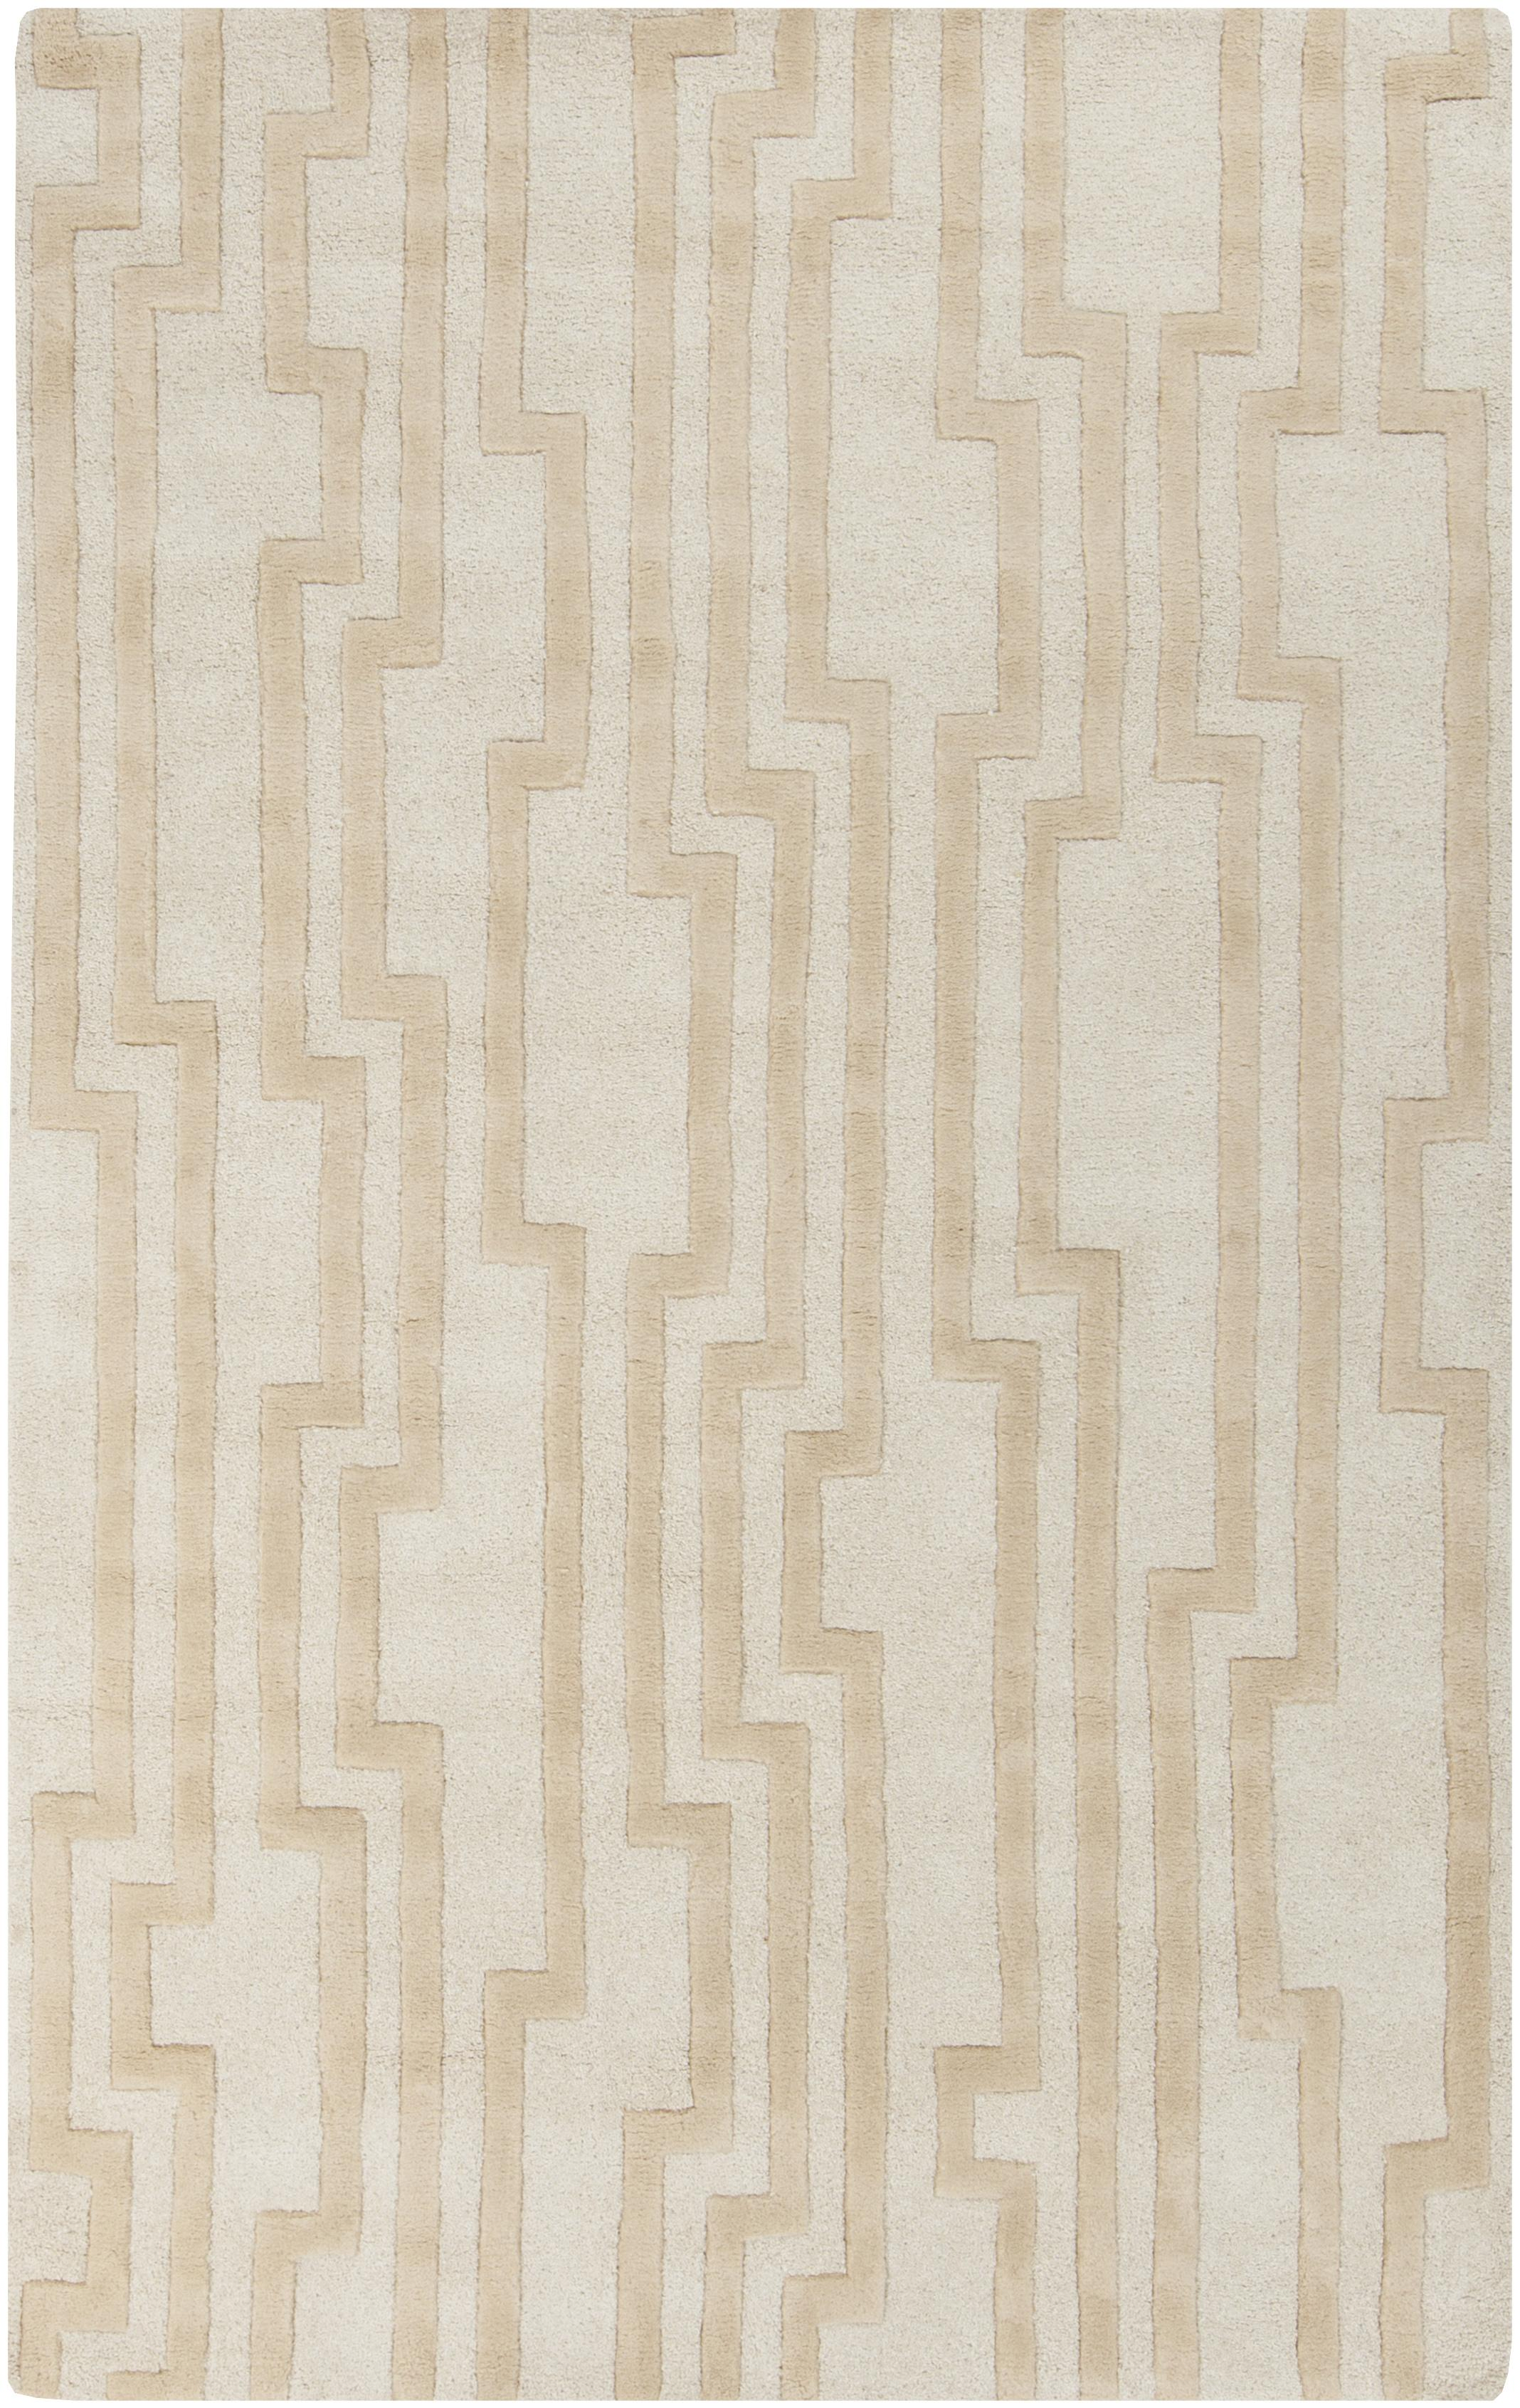 Surya Rugs Modern Classics 5' x 8' - Item Number: CAN2021-58